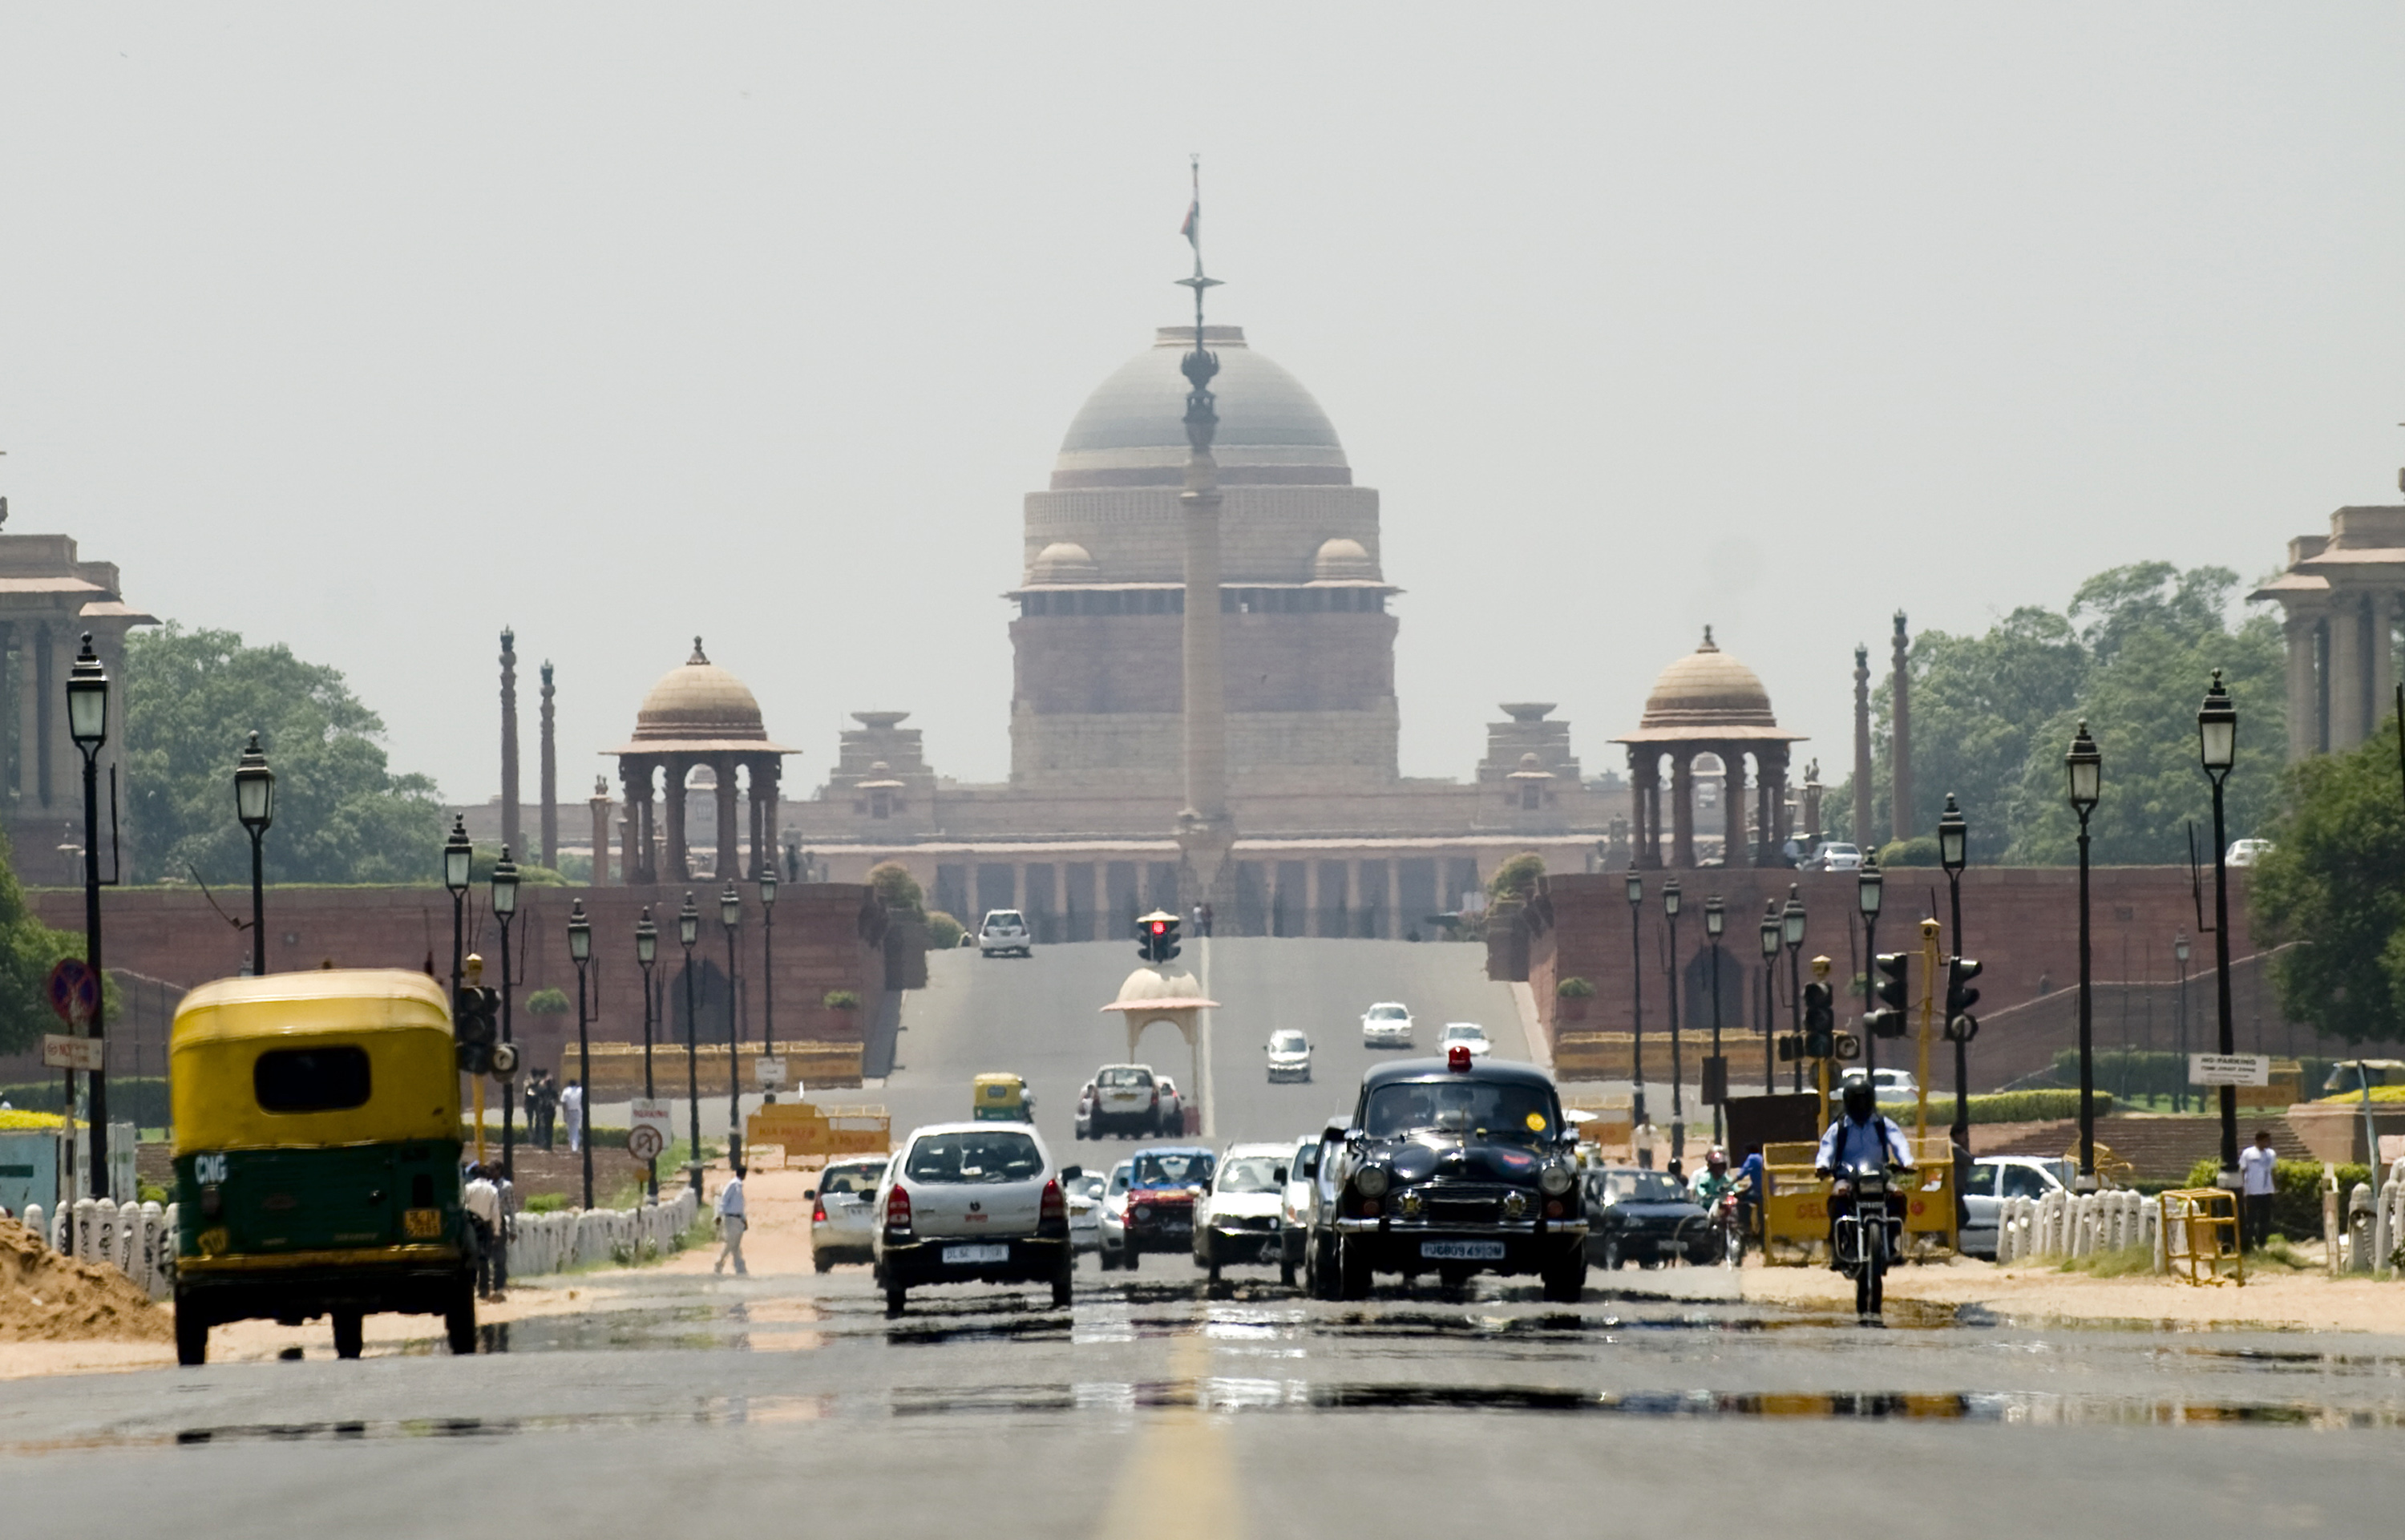 New Delhi, in the north of India, is projected to be among the hardest hit by rising temperatures.